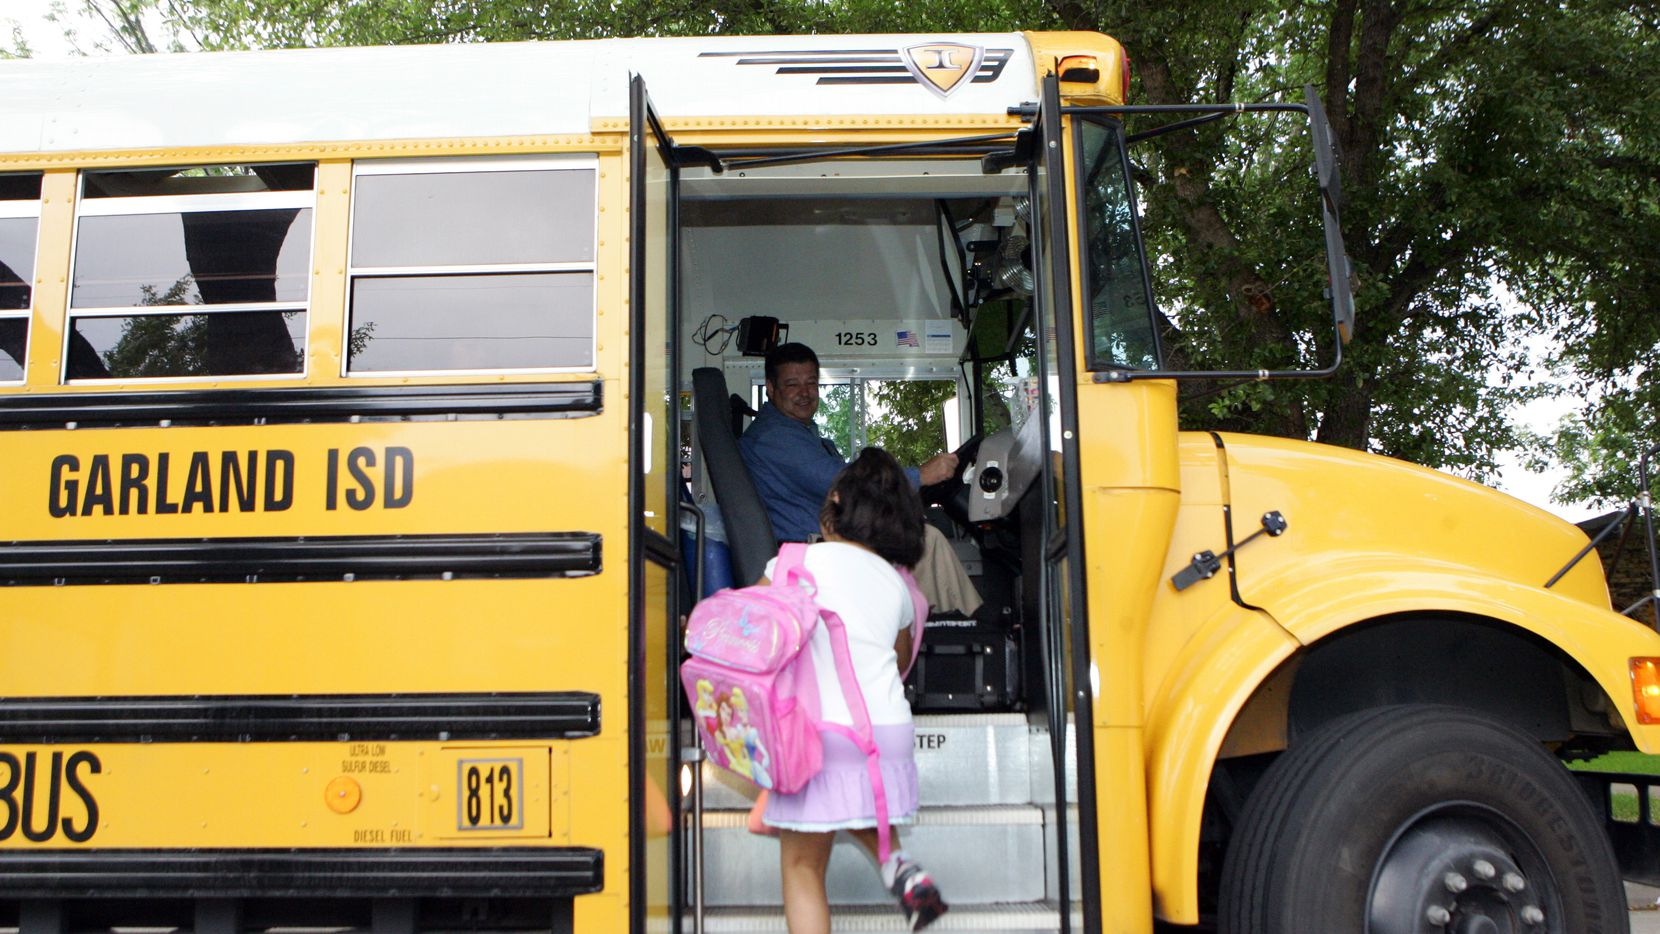 Garland Independent School District bus driver Parker Abell (left) greets Rosa Medrano as she boards the bus for Hillside Elementary and Watson Technology Center in Garland, Texas, Tuesday, May 9, 2006.